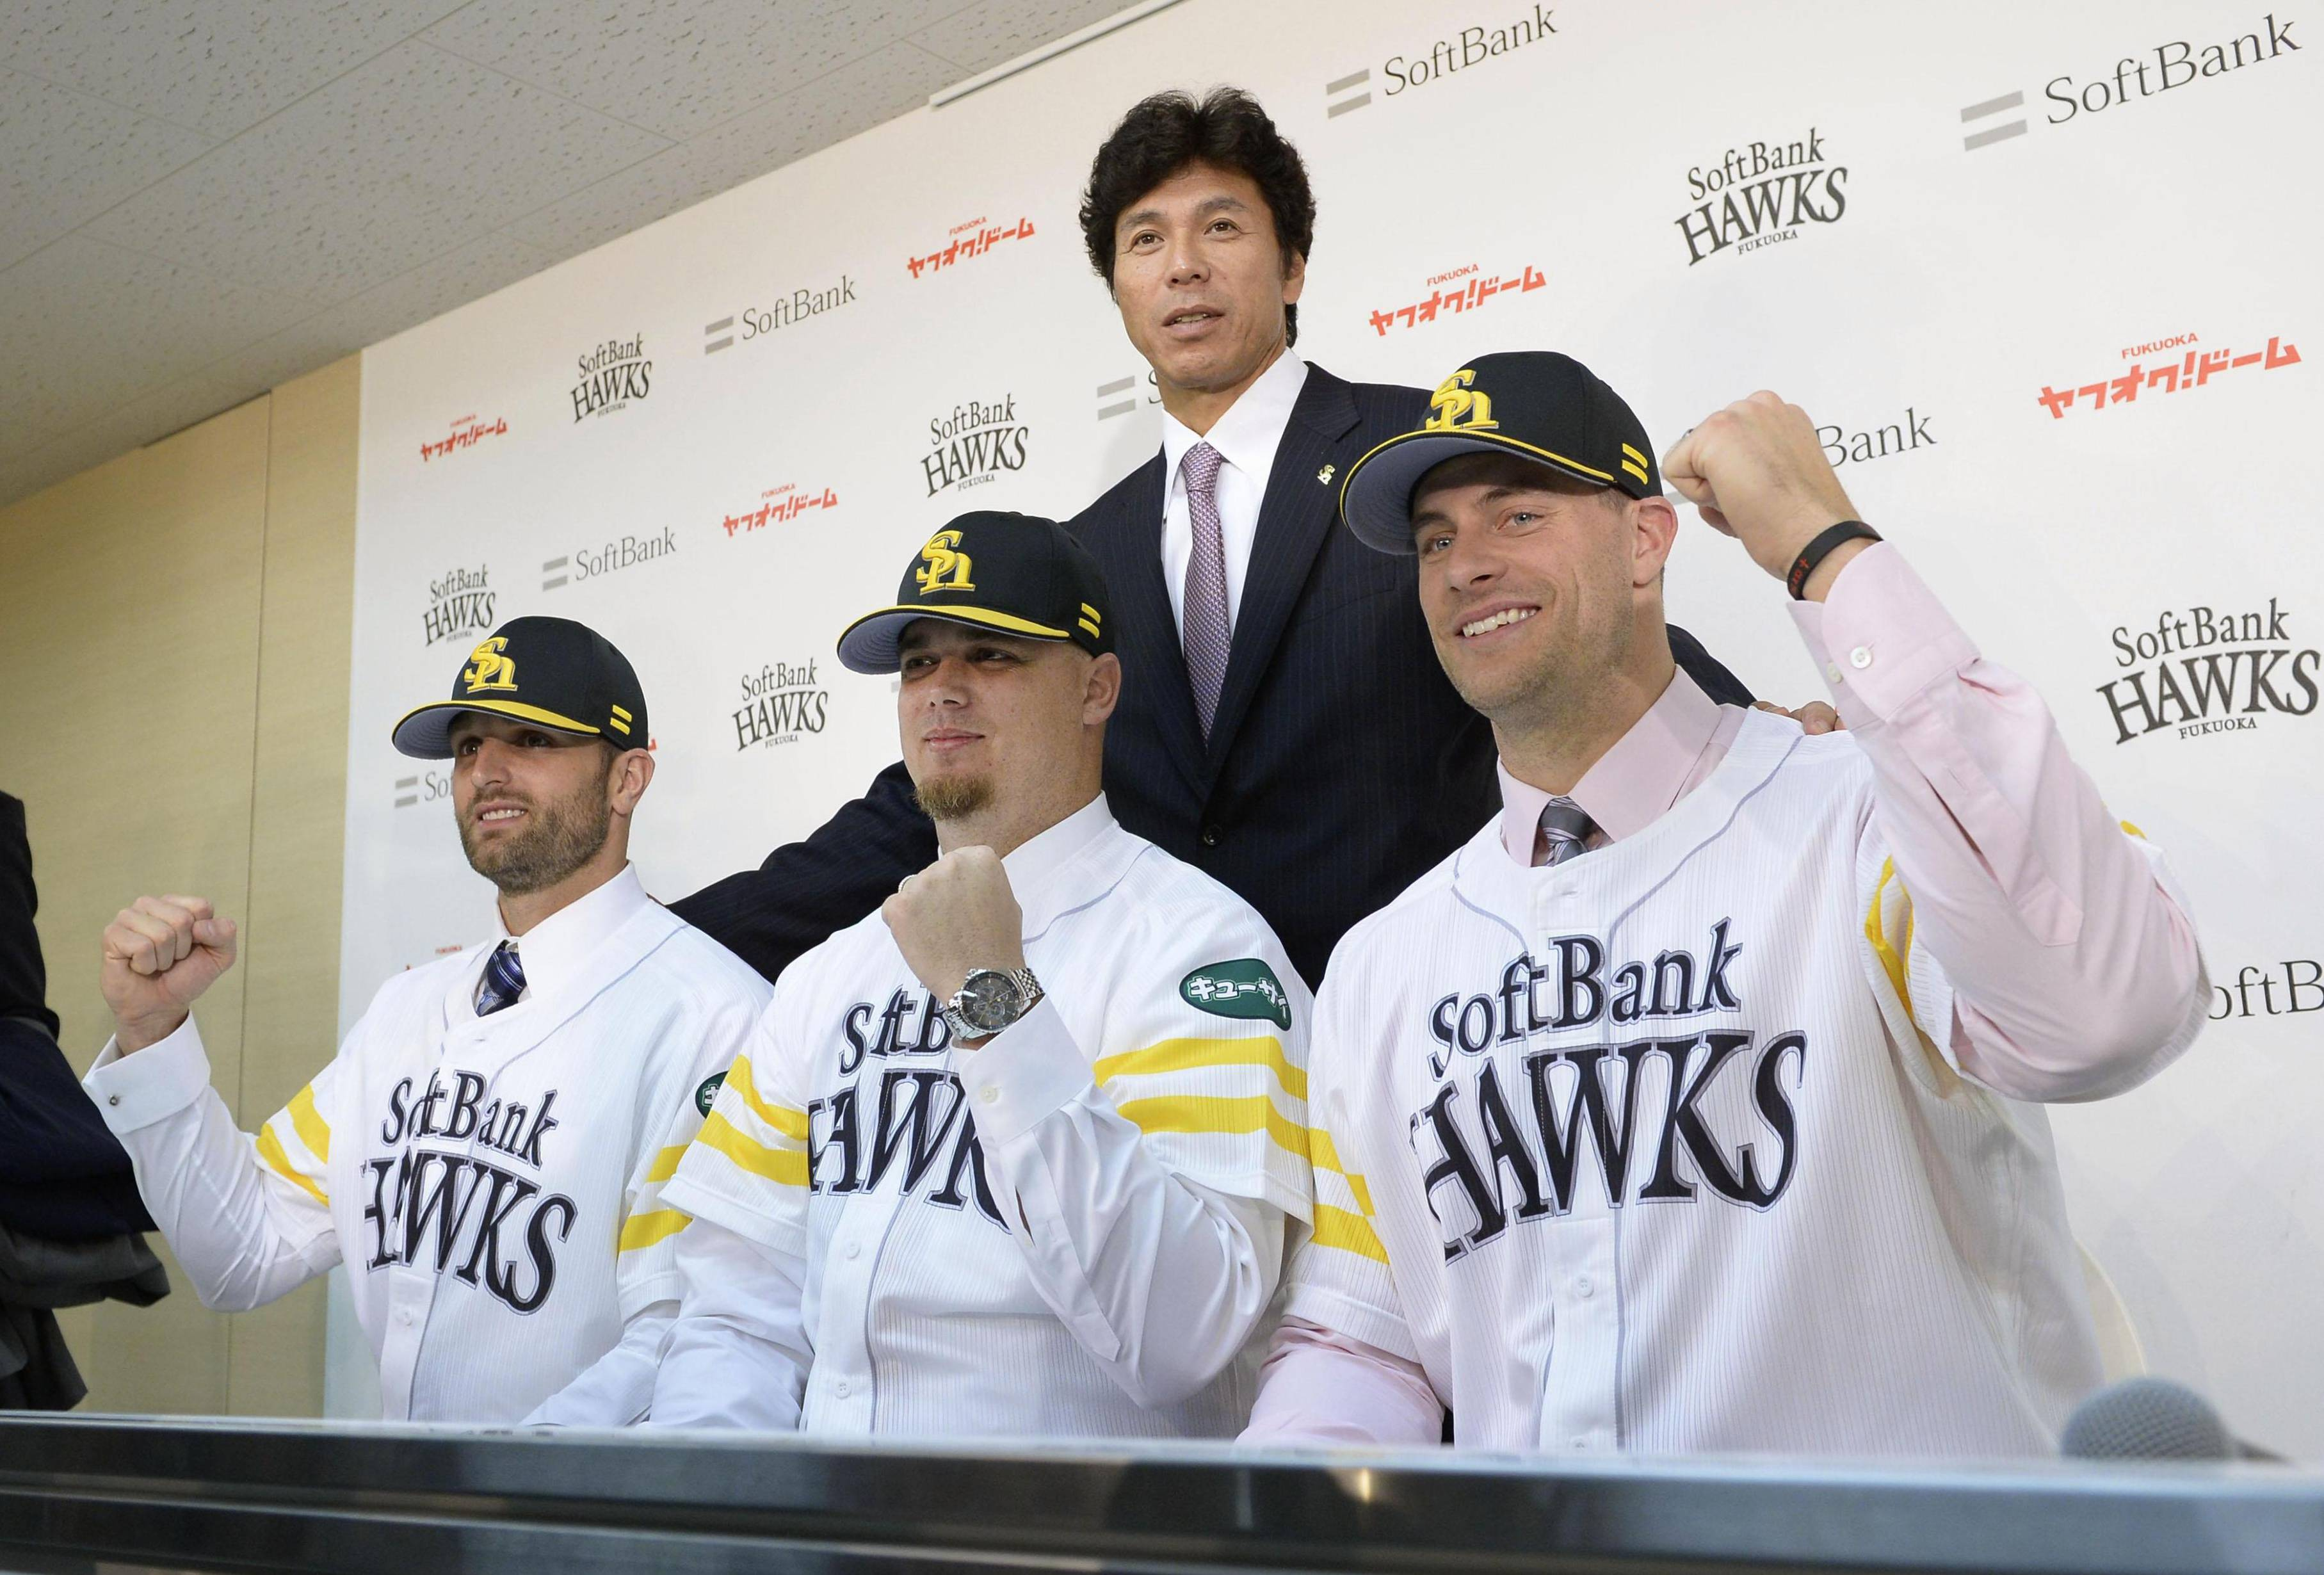 Welcome to the nest: Hawks manager Koji Akiyama poses with pitchers (from left) Dan Sarfate, Brian Wolfe, and Jason Standridge during an introductory news conference on Thursday. | KYODO